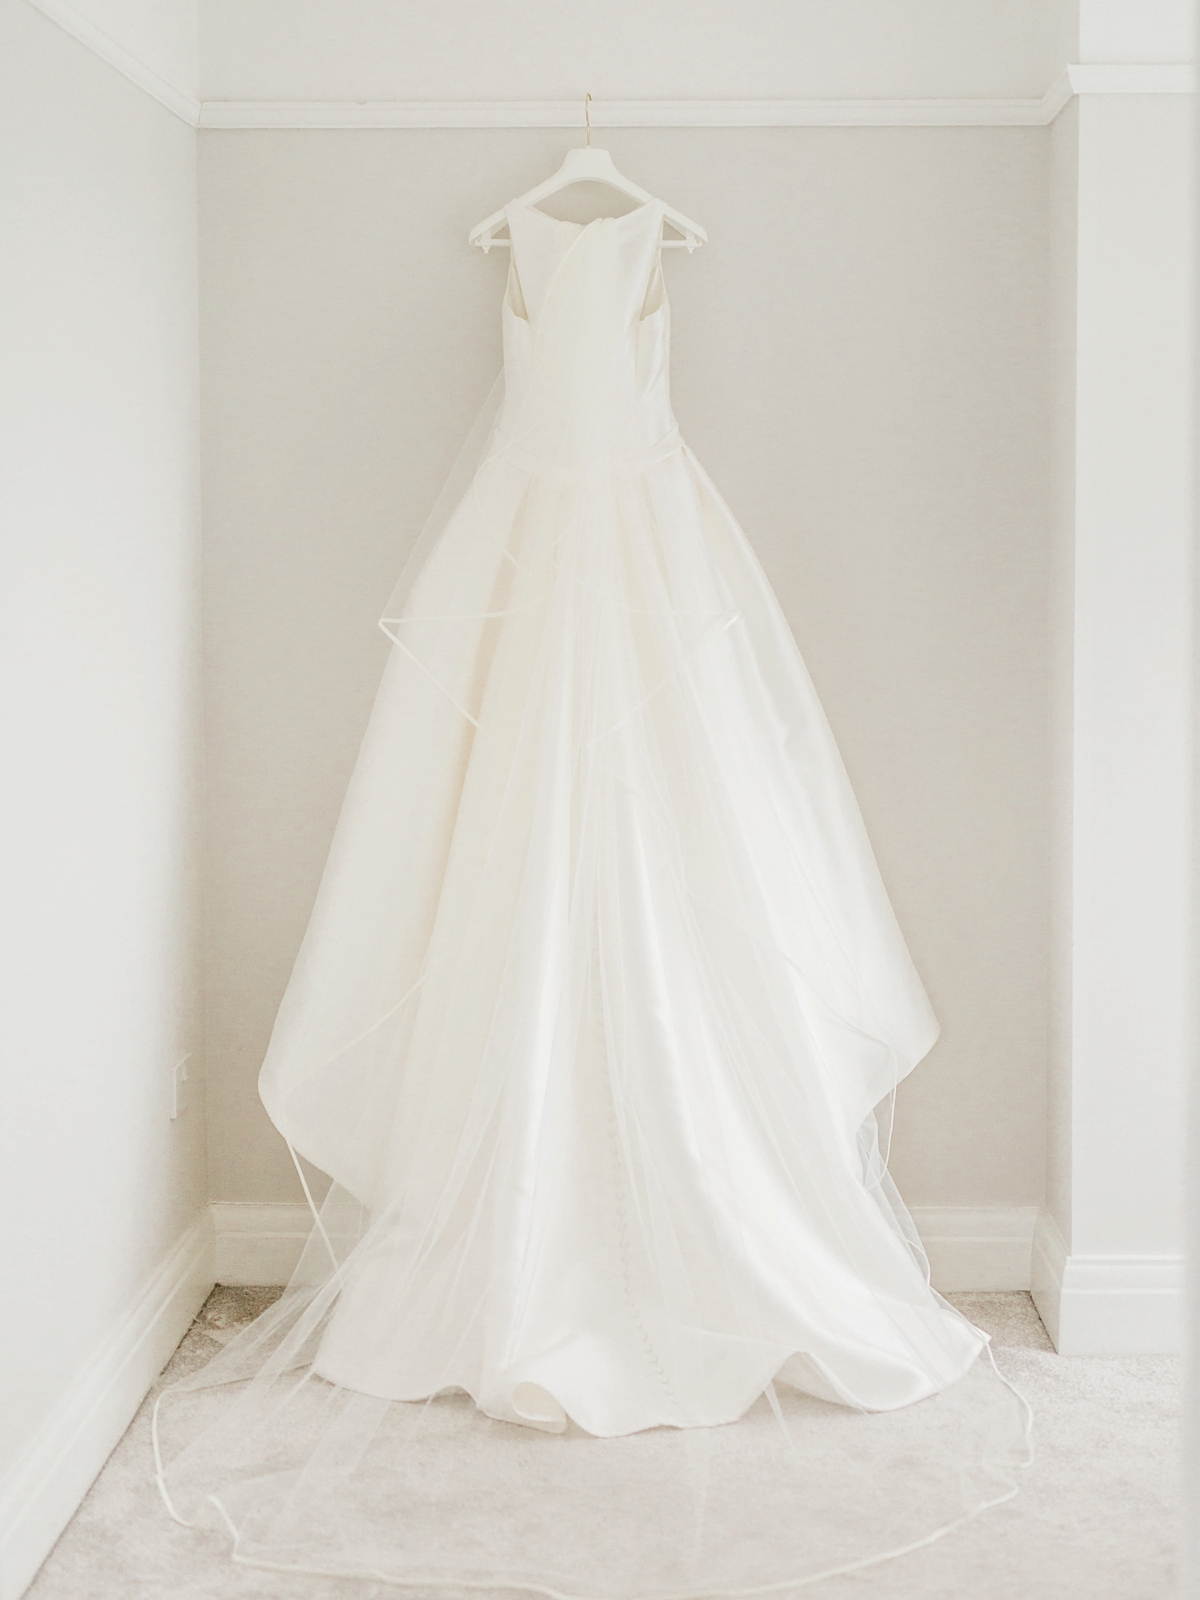 Audrey Hepburn Inspired Pronovias Elegance For A Classy And Modern